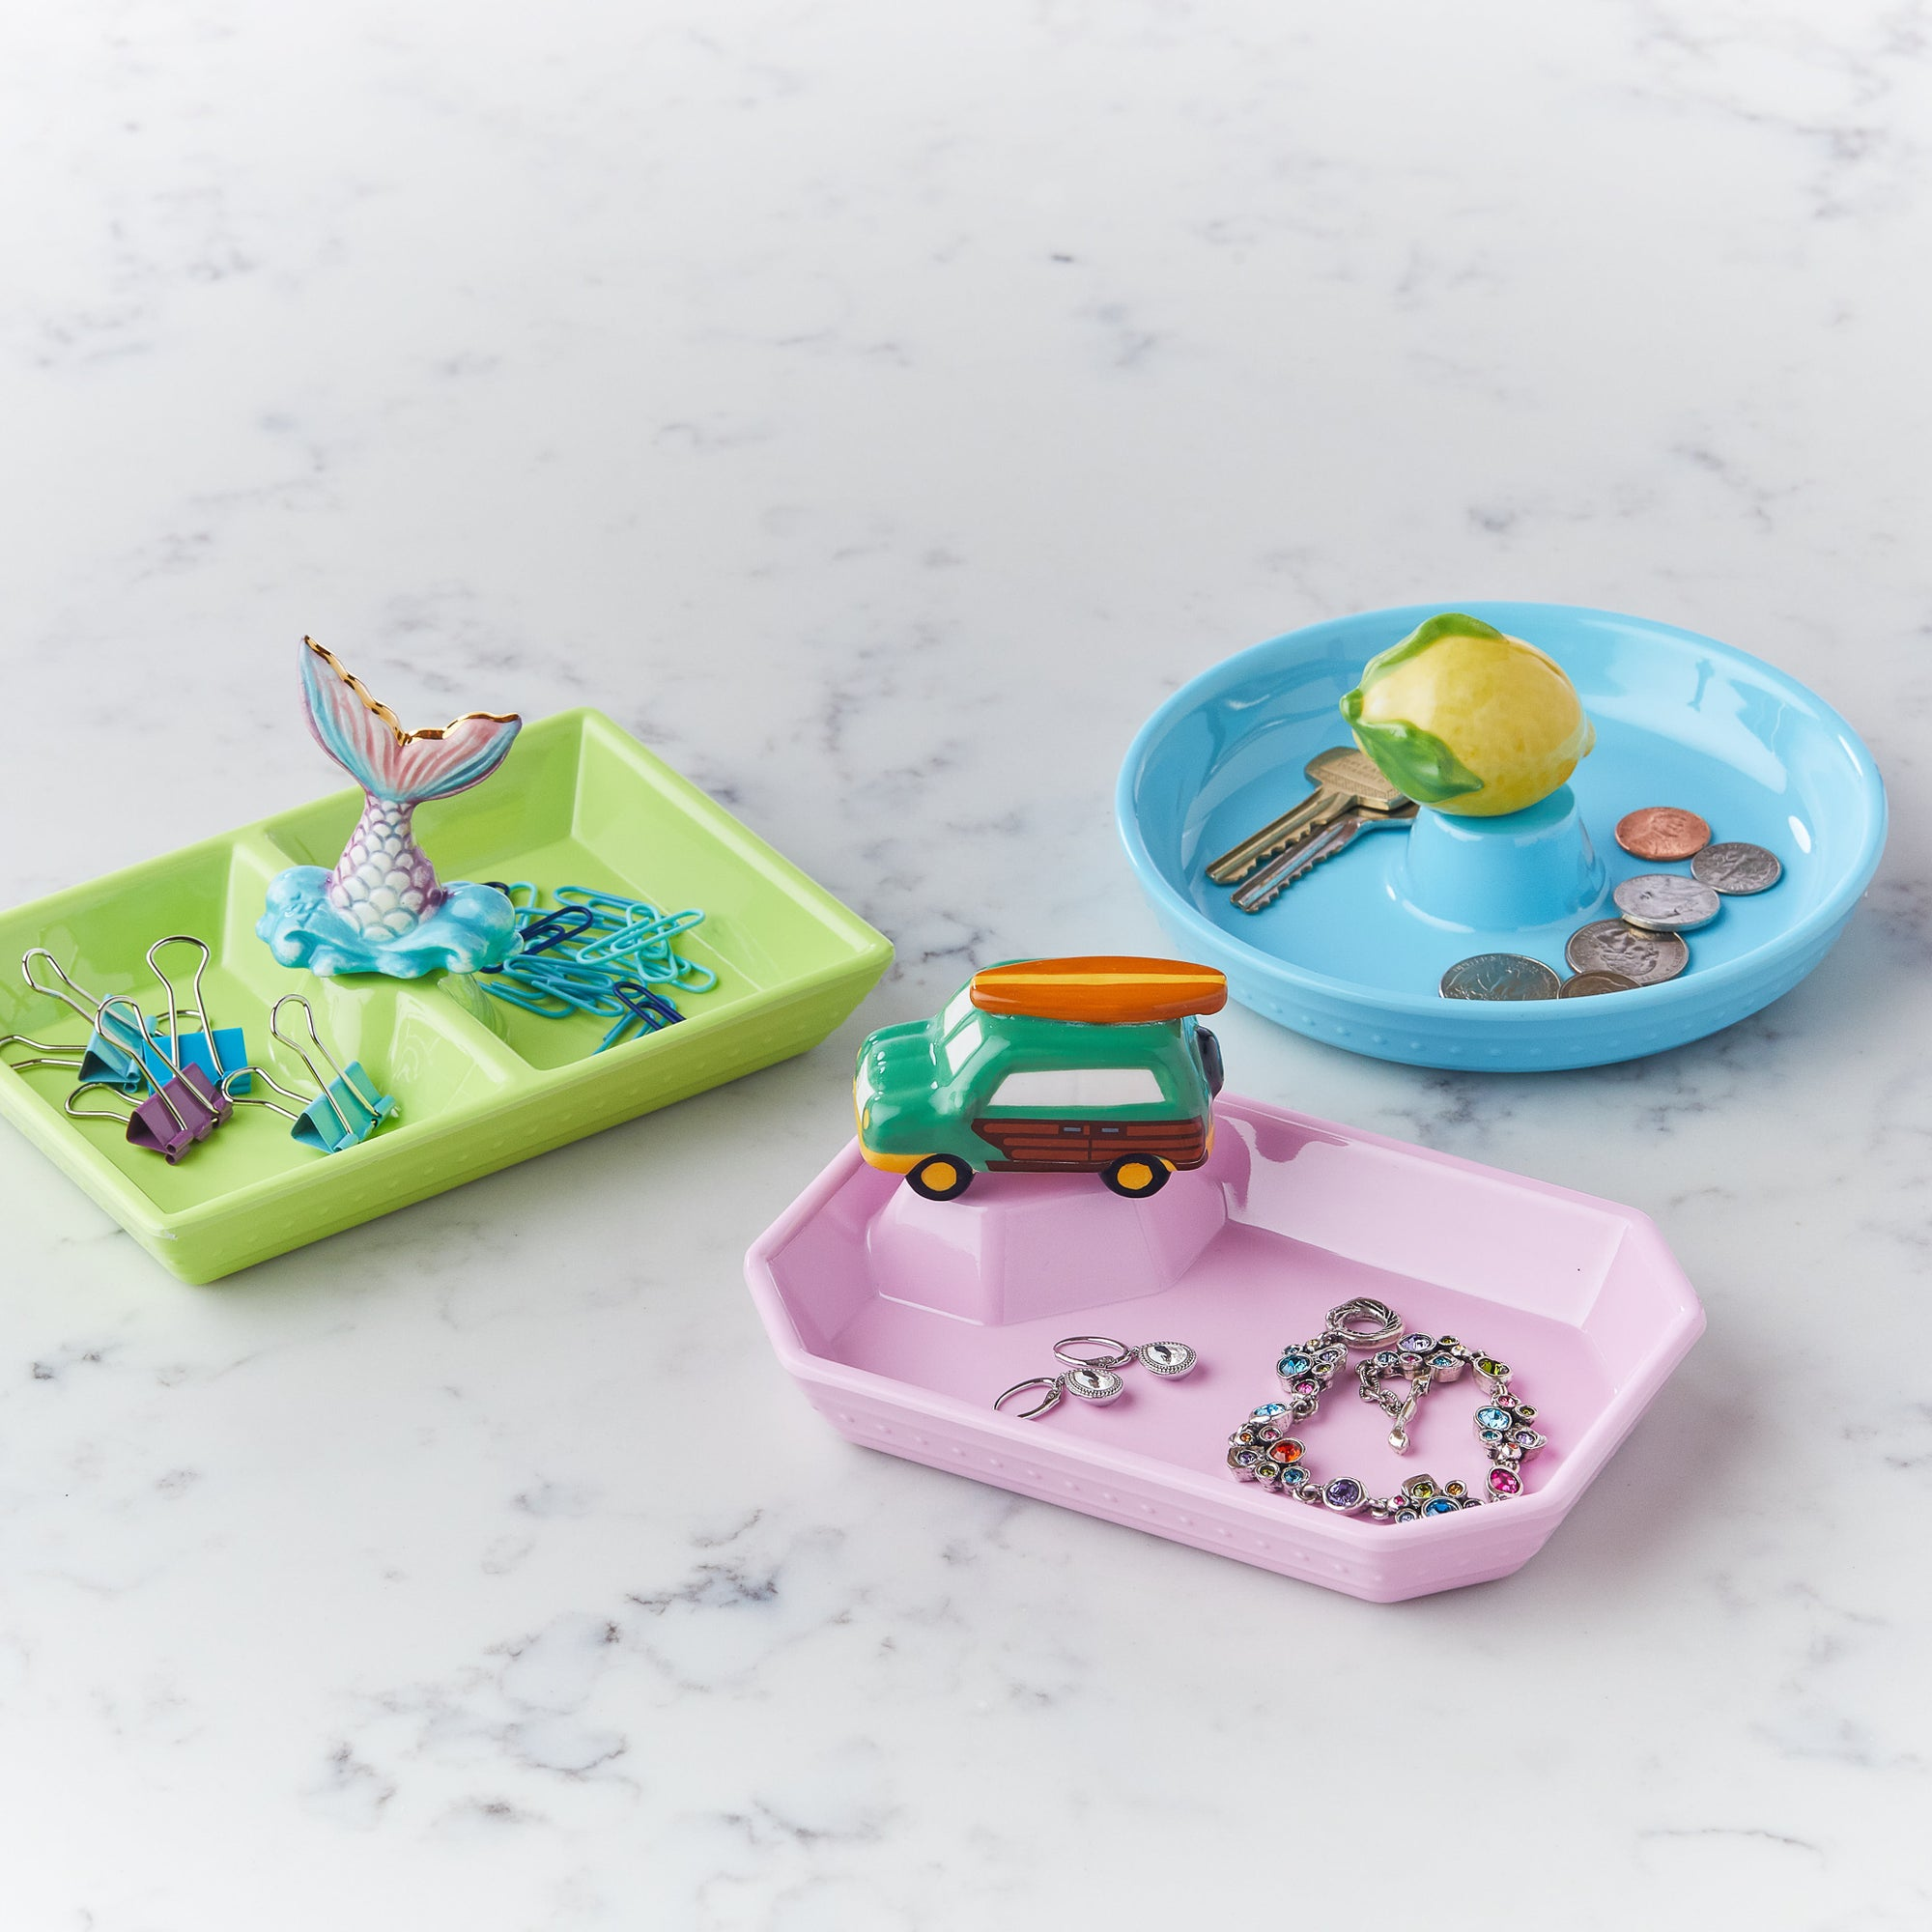 These colorful dishes will bring some cheer to your organizational tendencies! Keep candy, keys, business cards, slices of lemon and lime! you name it, the dainty dishes will hold it! And they look so cute with all the new minis!